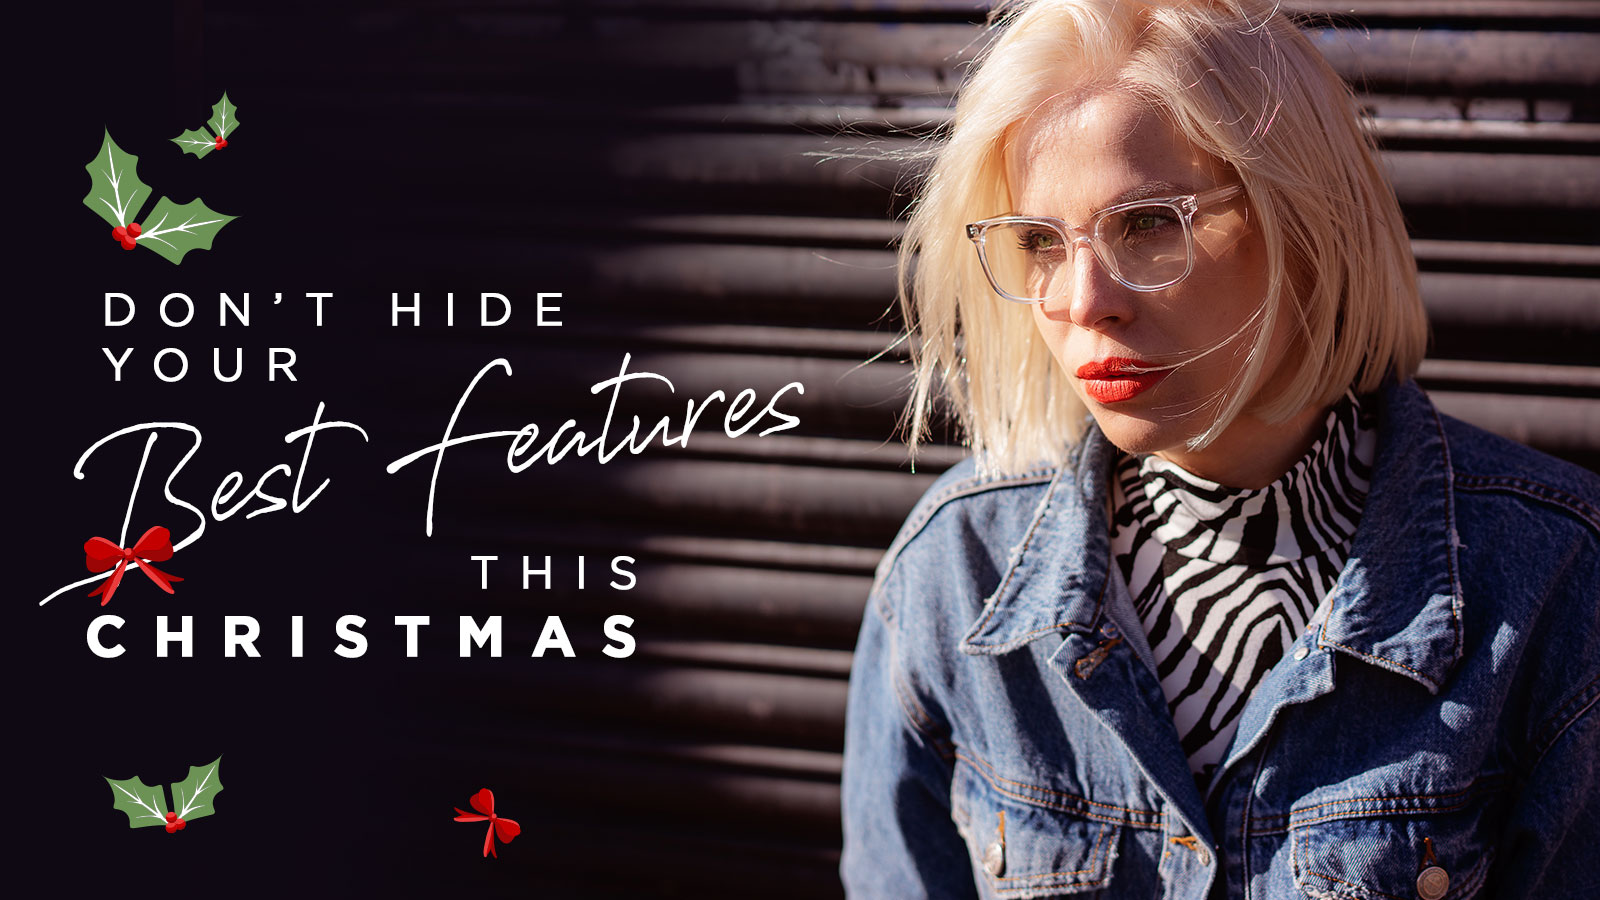 Don't Hide Your Best Features This Christmas